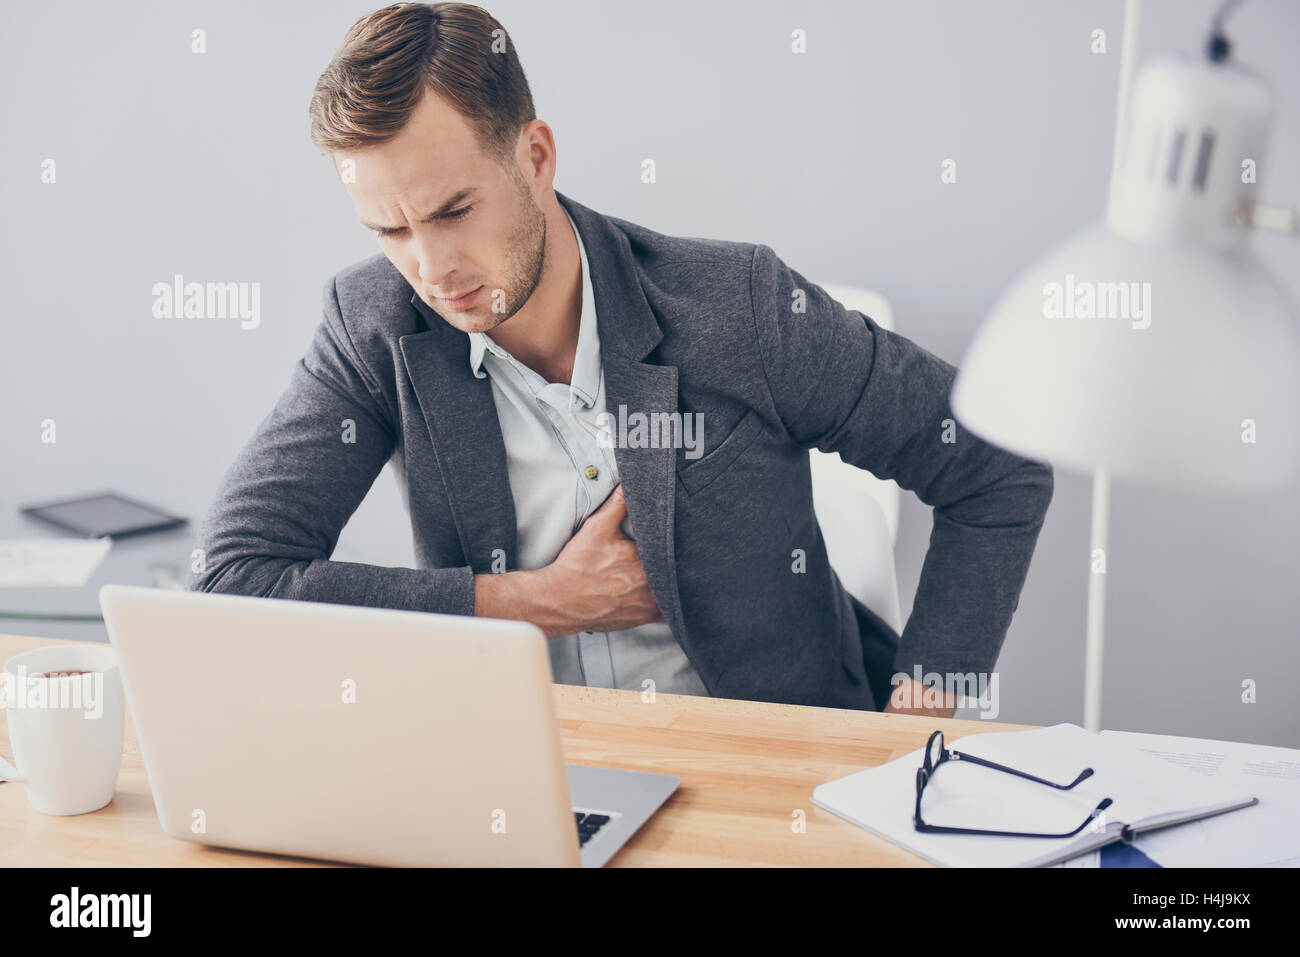 Young handsome man having heartache while working. - Stock Image